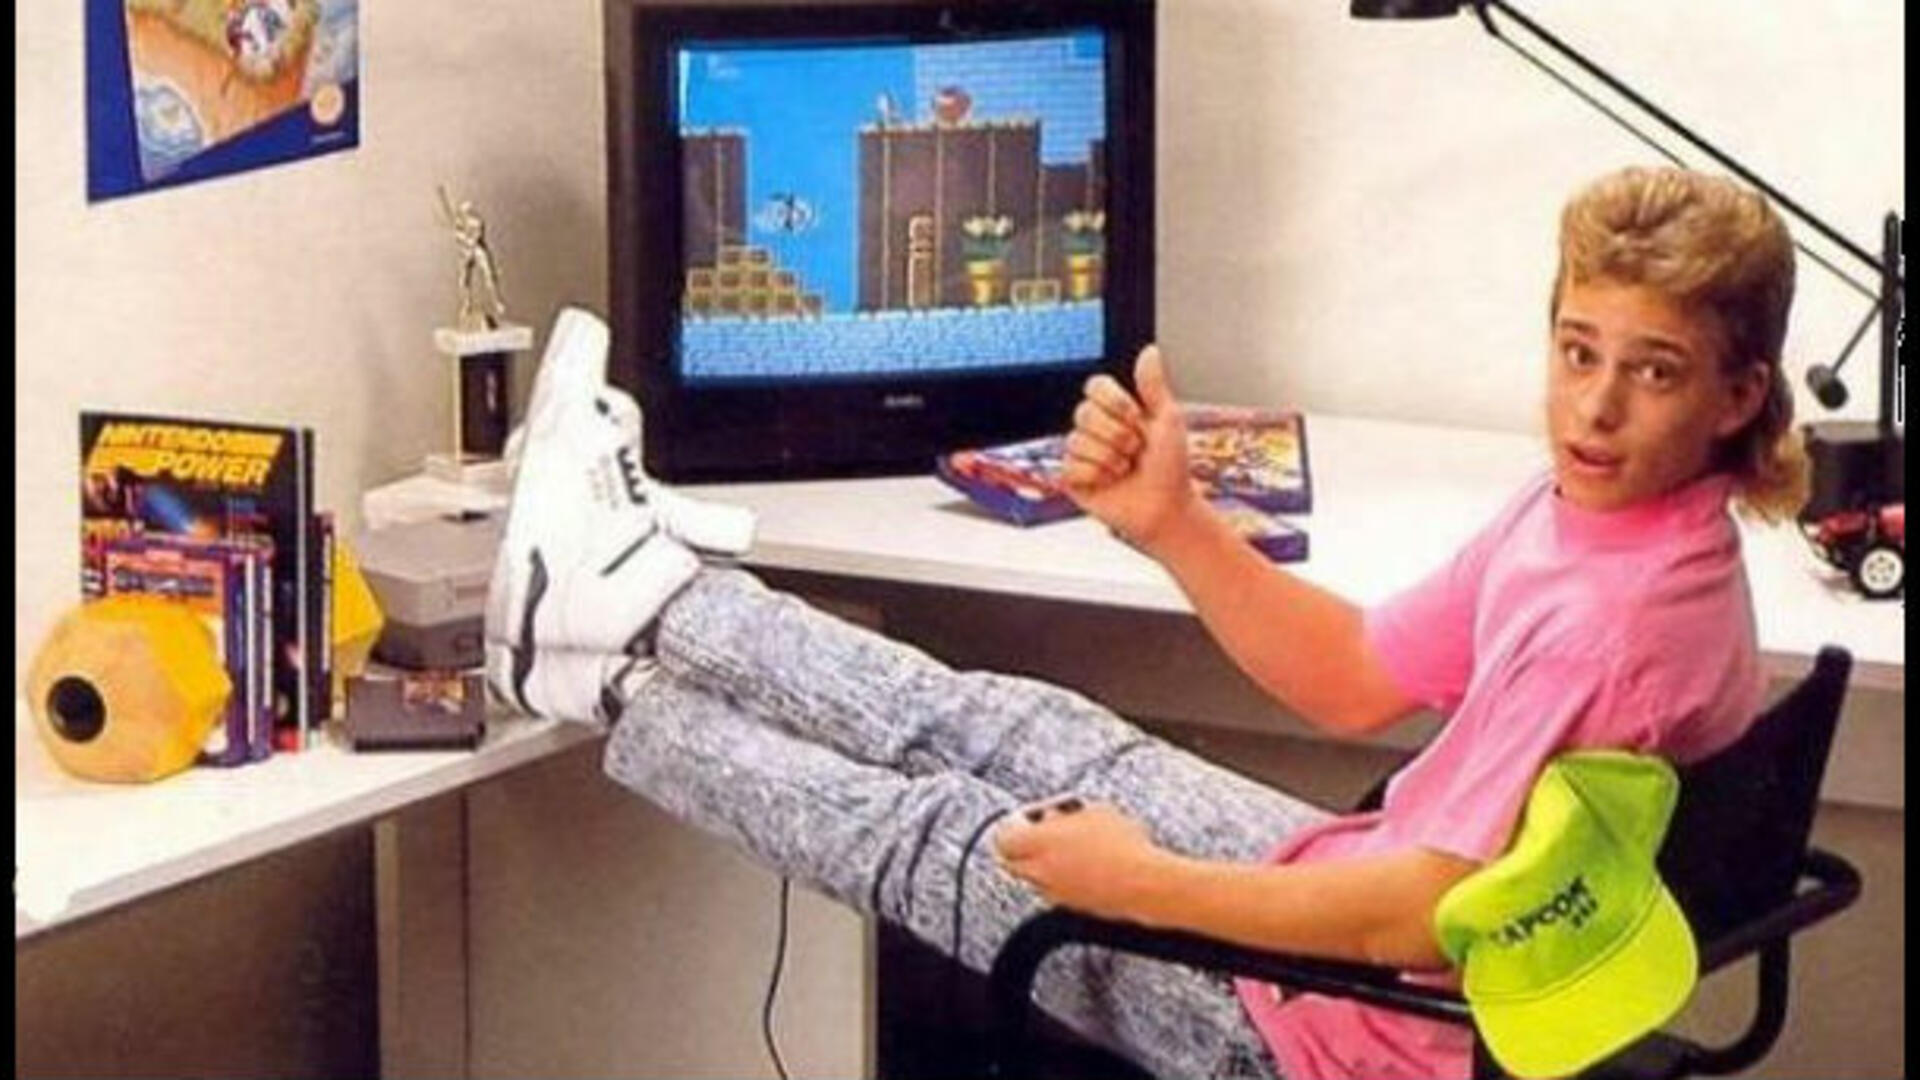 """""""Nuts for Nintendo"""" 20/20 Video from the '80s Proves the More Things Change, the More They Stay the Same"""